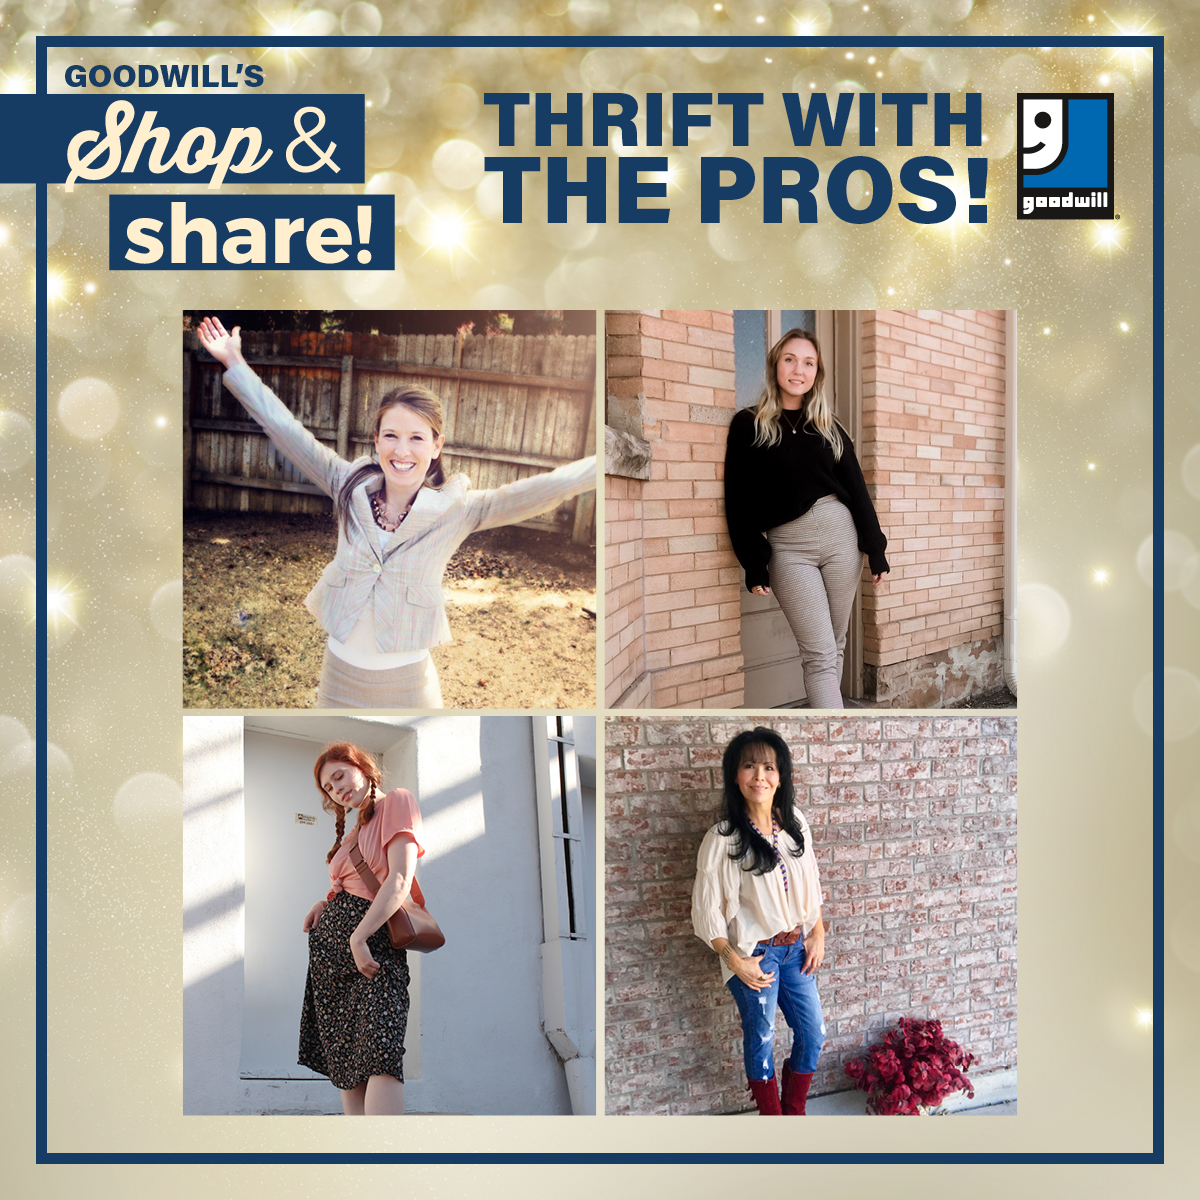 Shop & Share in Colorado Springs! Thrift with the PROS!